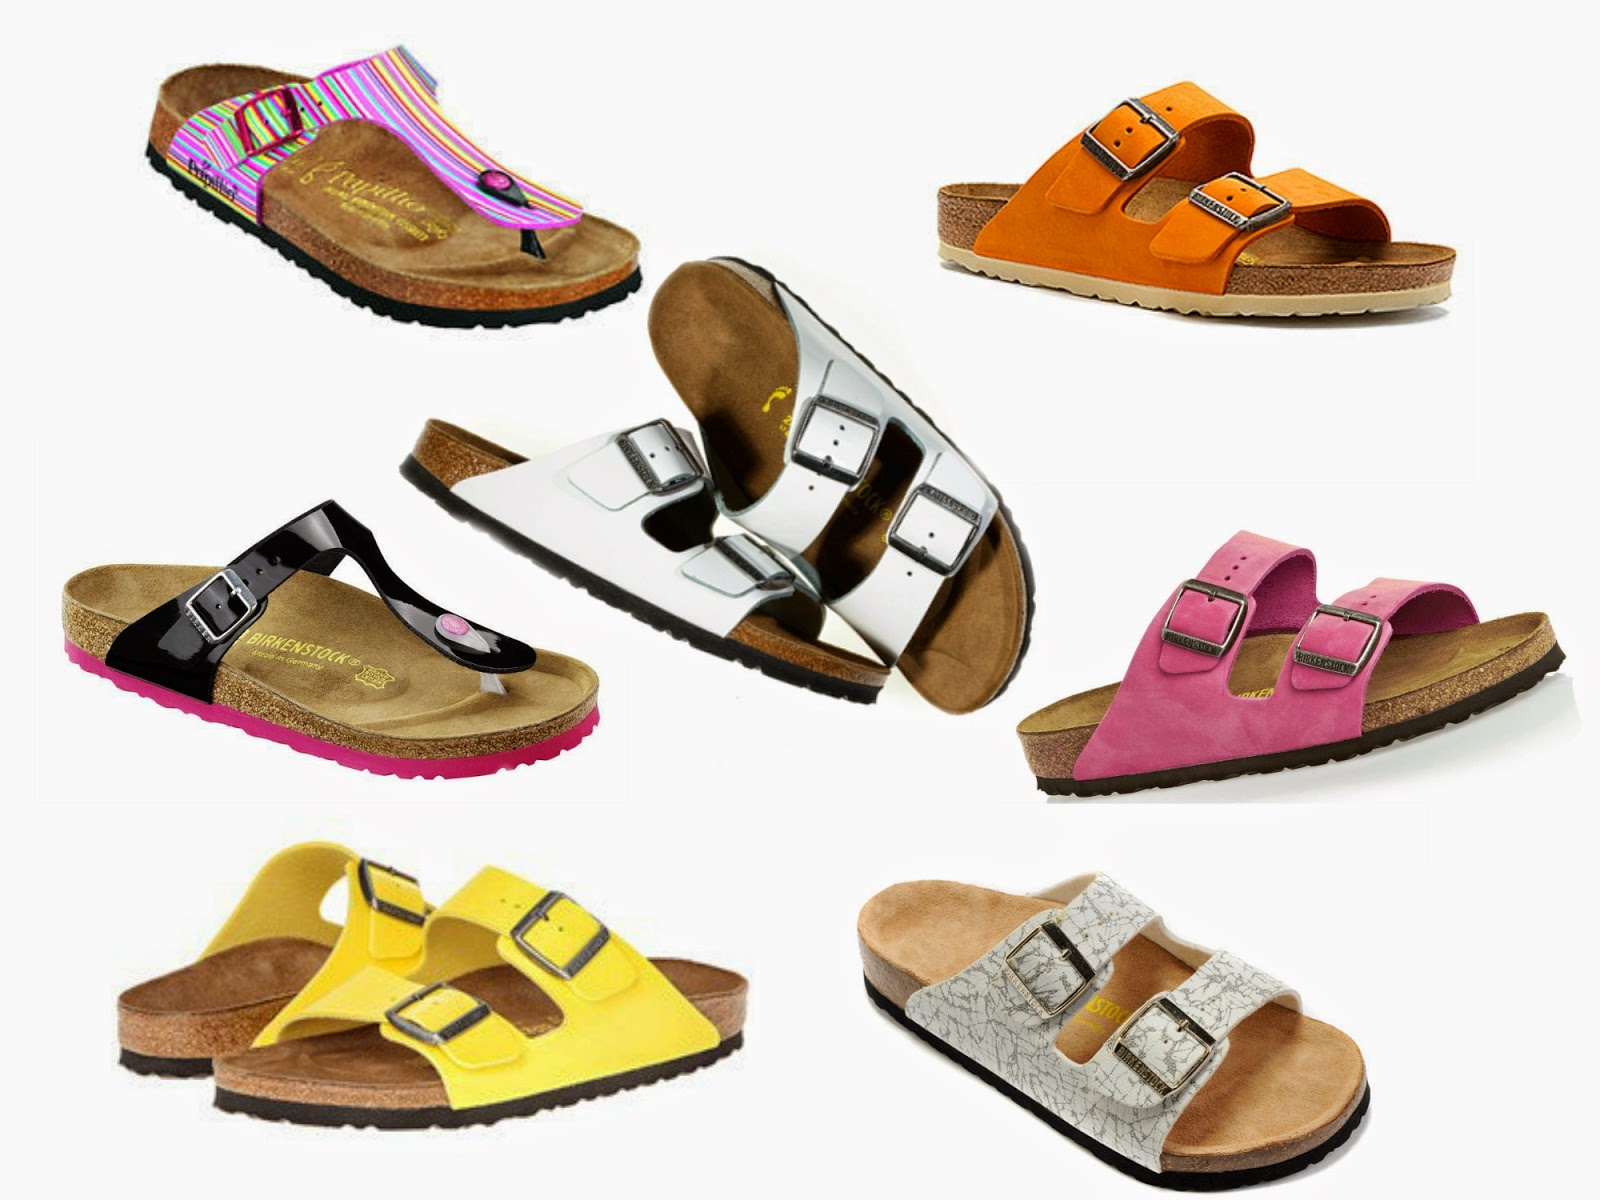 pool slider birkenstock slip on shoes colourful flatform primark haul double strap buckle summer 2015